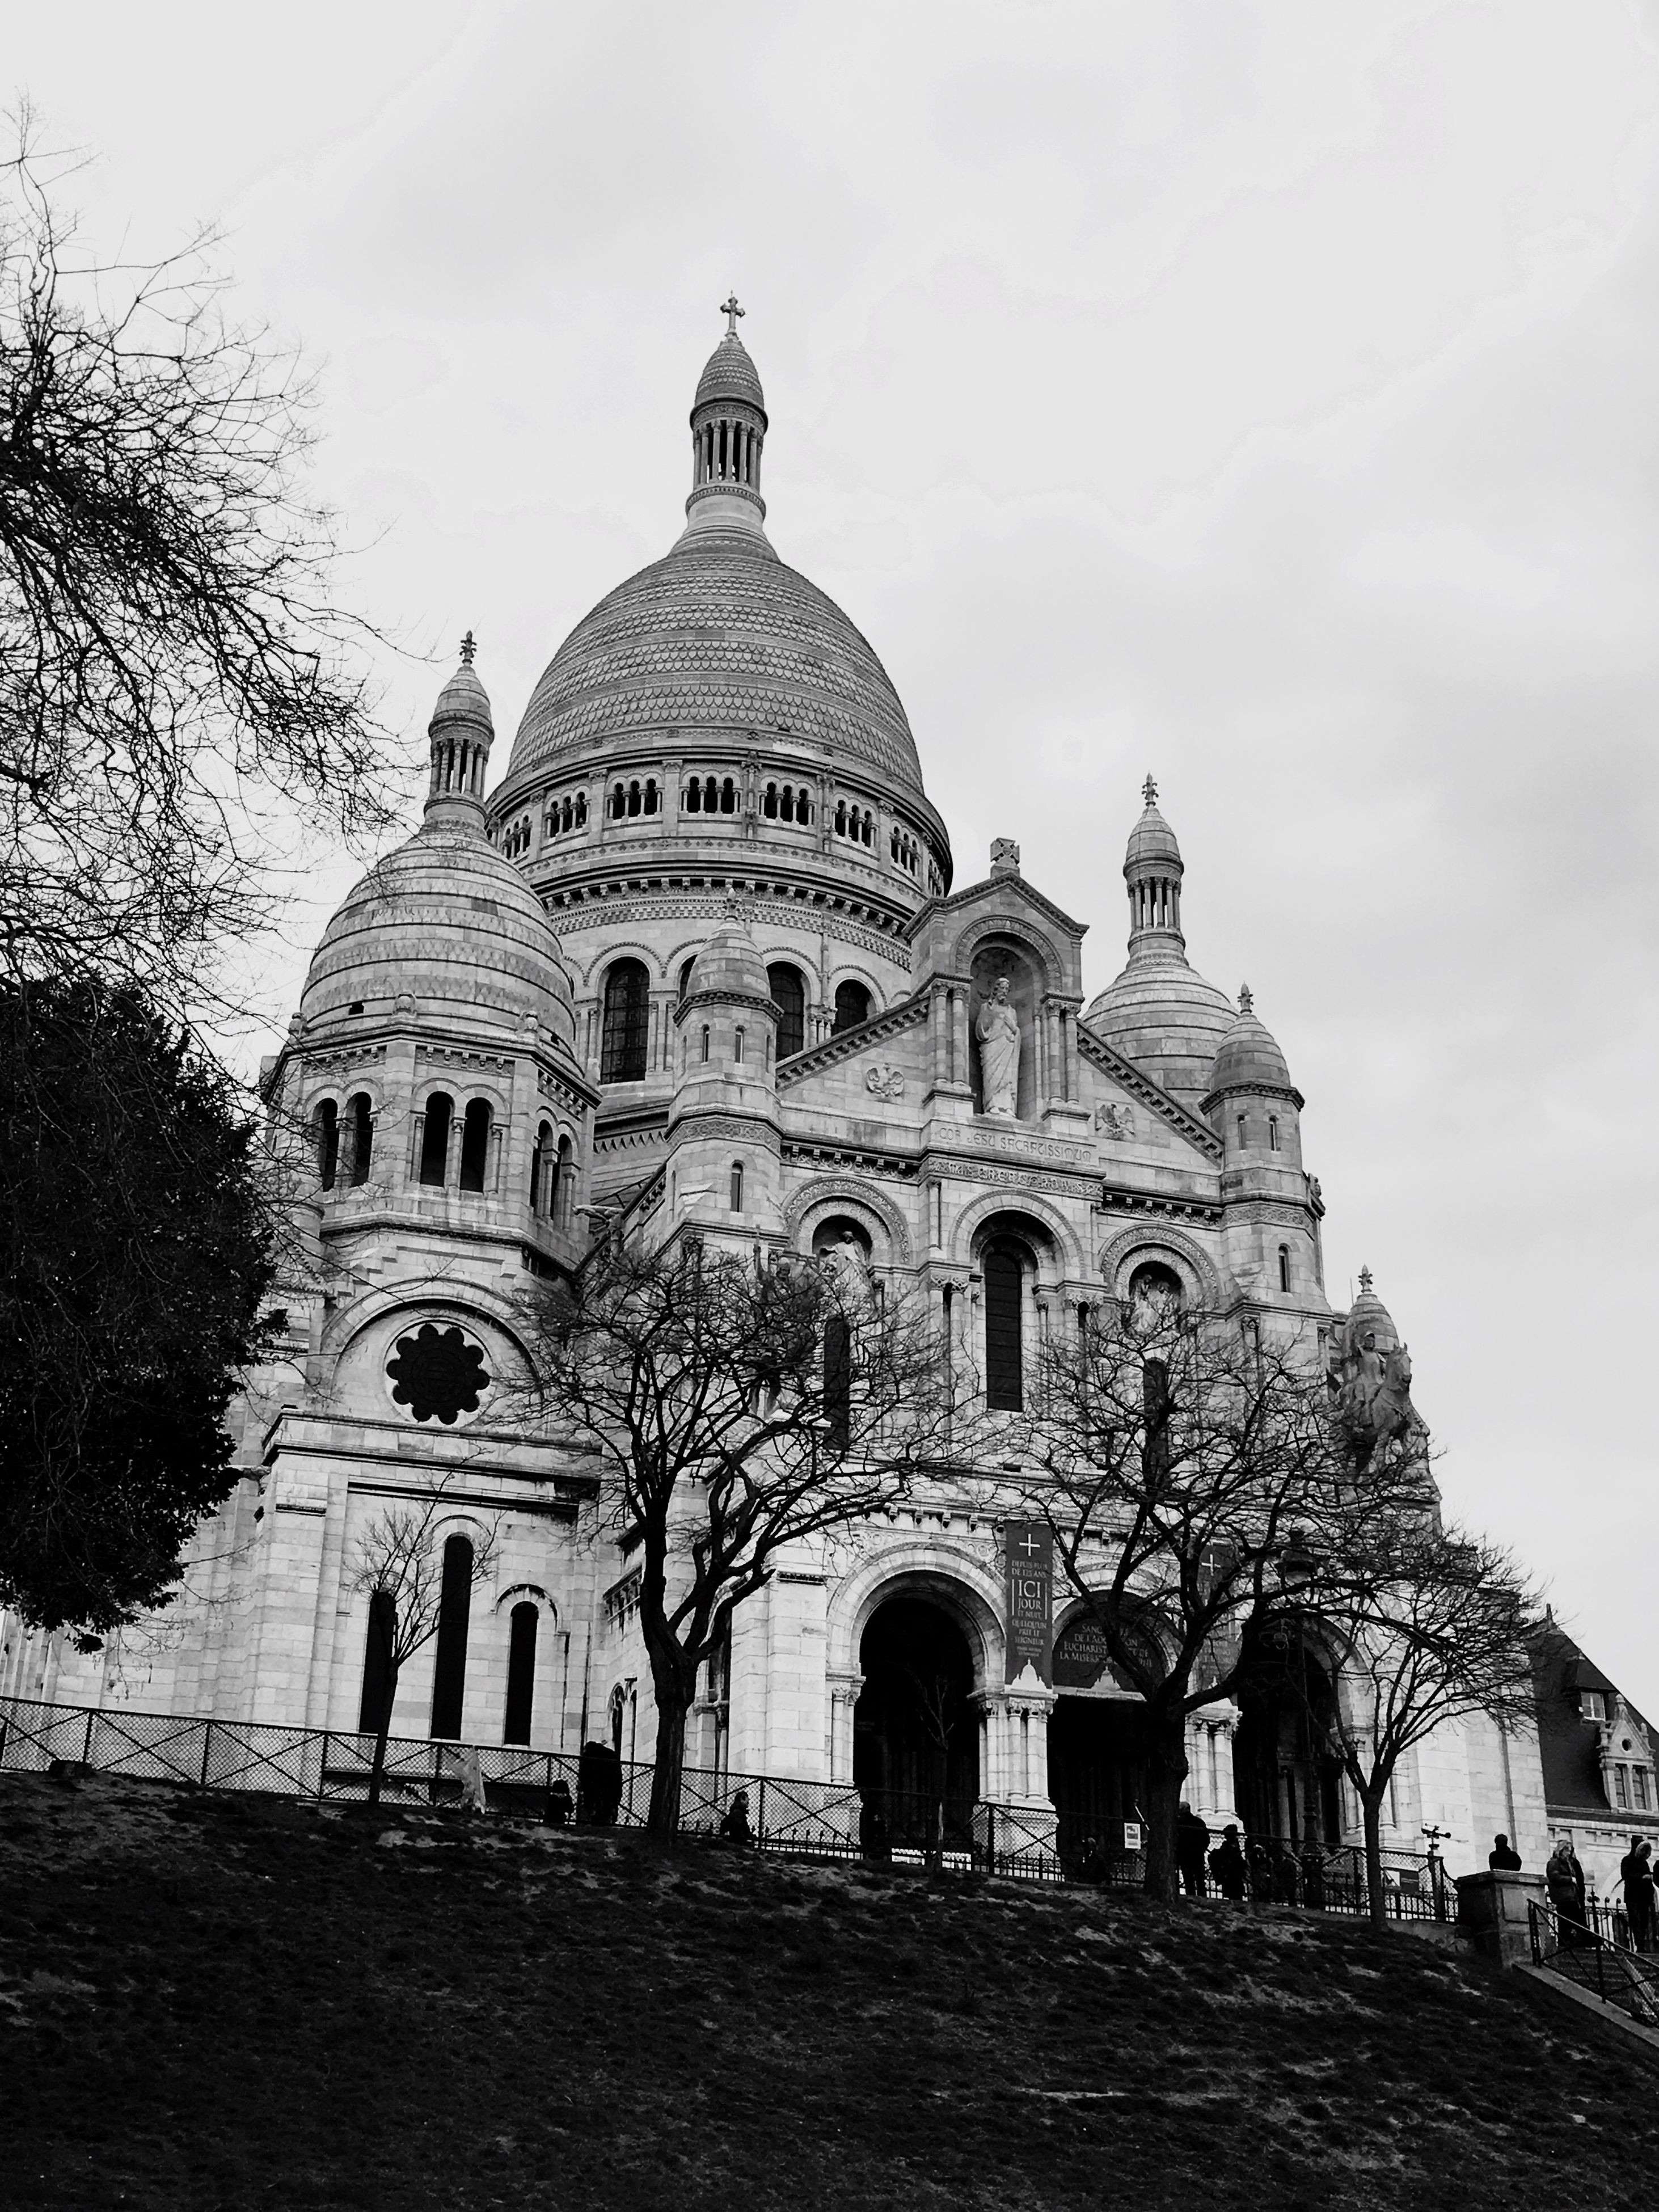 place of worship, religion, architecture, building exterior, spirituality, built structure, church, dome, cathedral, sky, history, famous place, facade, cross, travel destinations, arch, tourism, low angle view